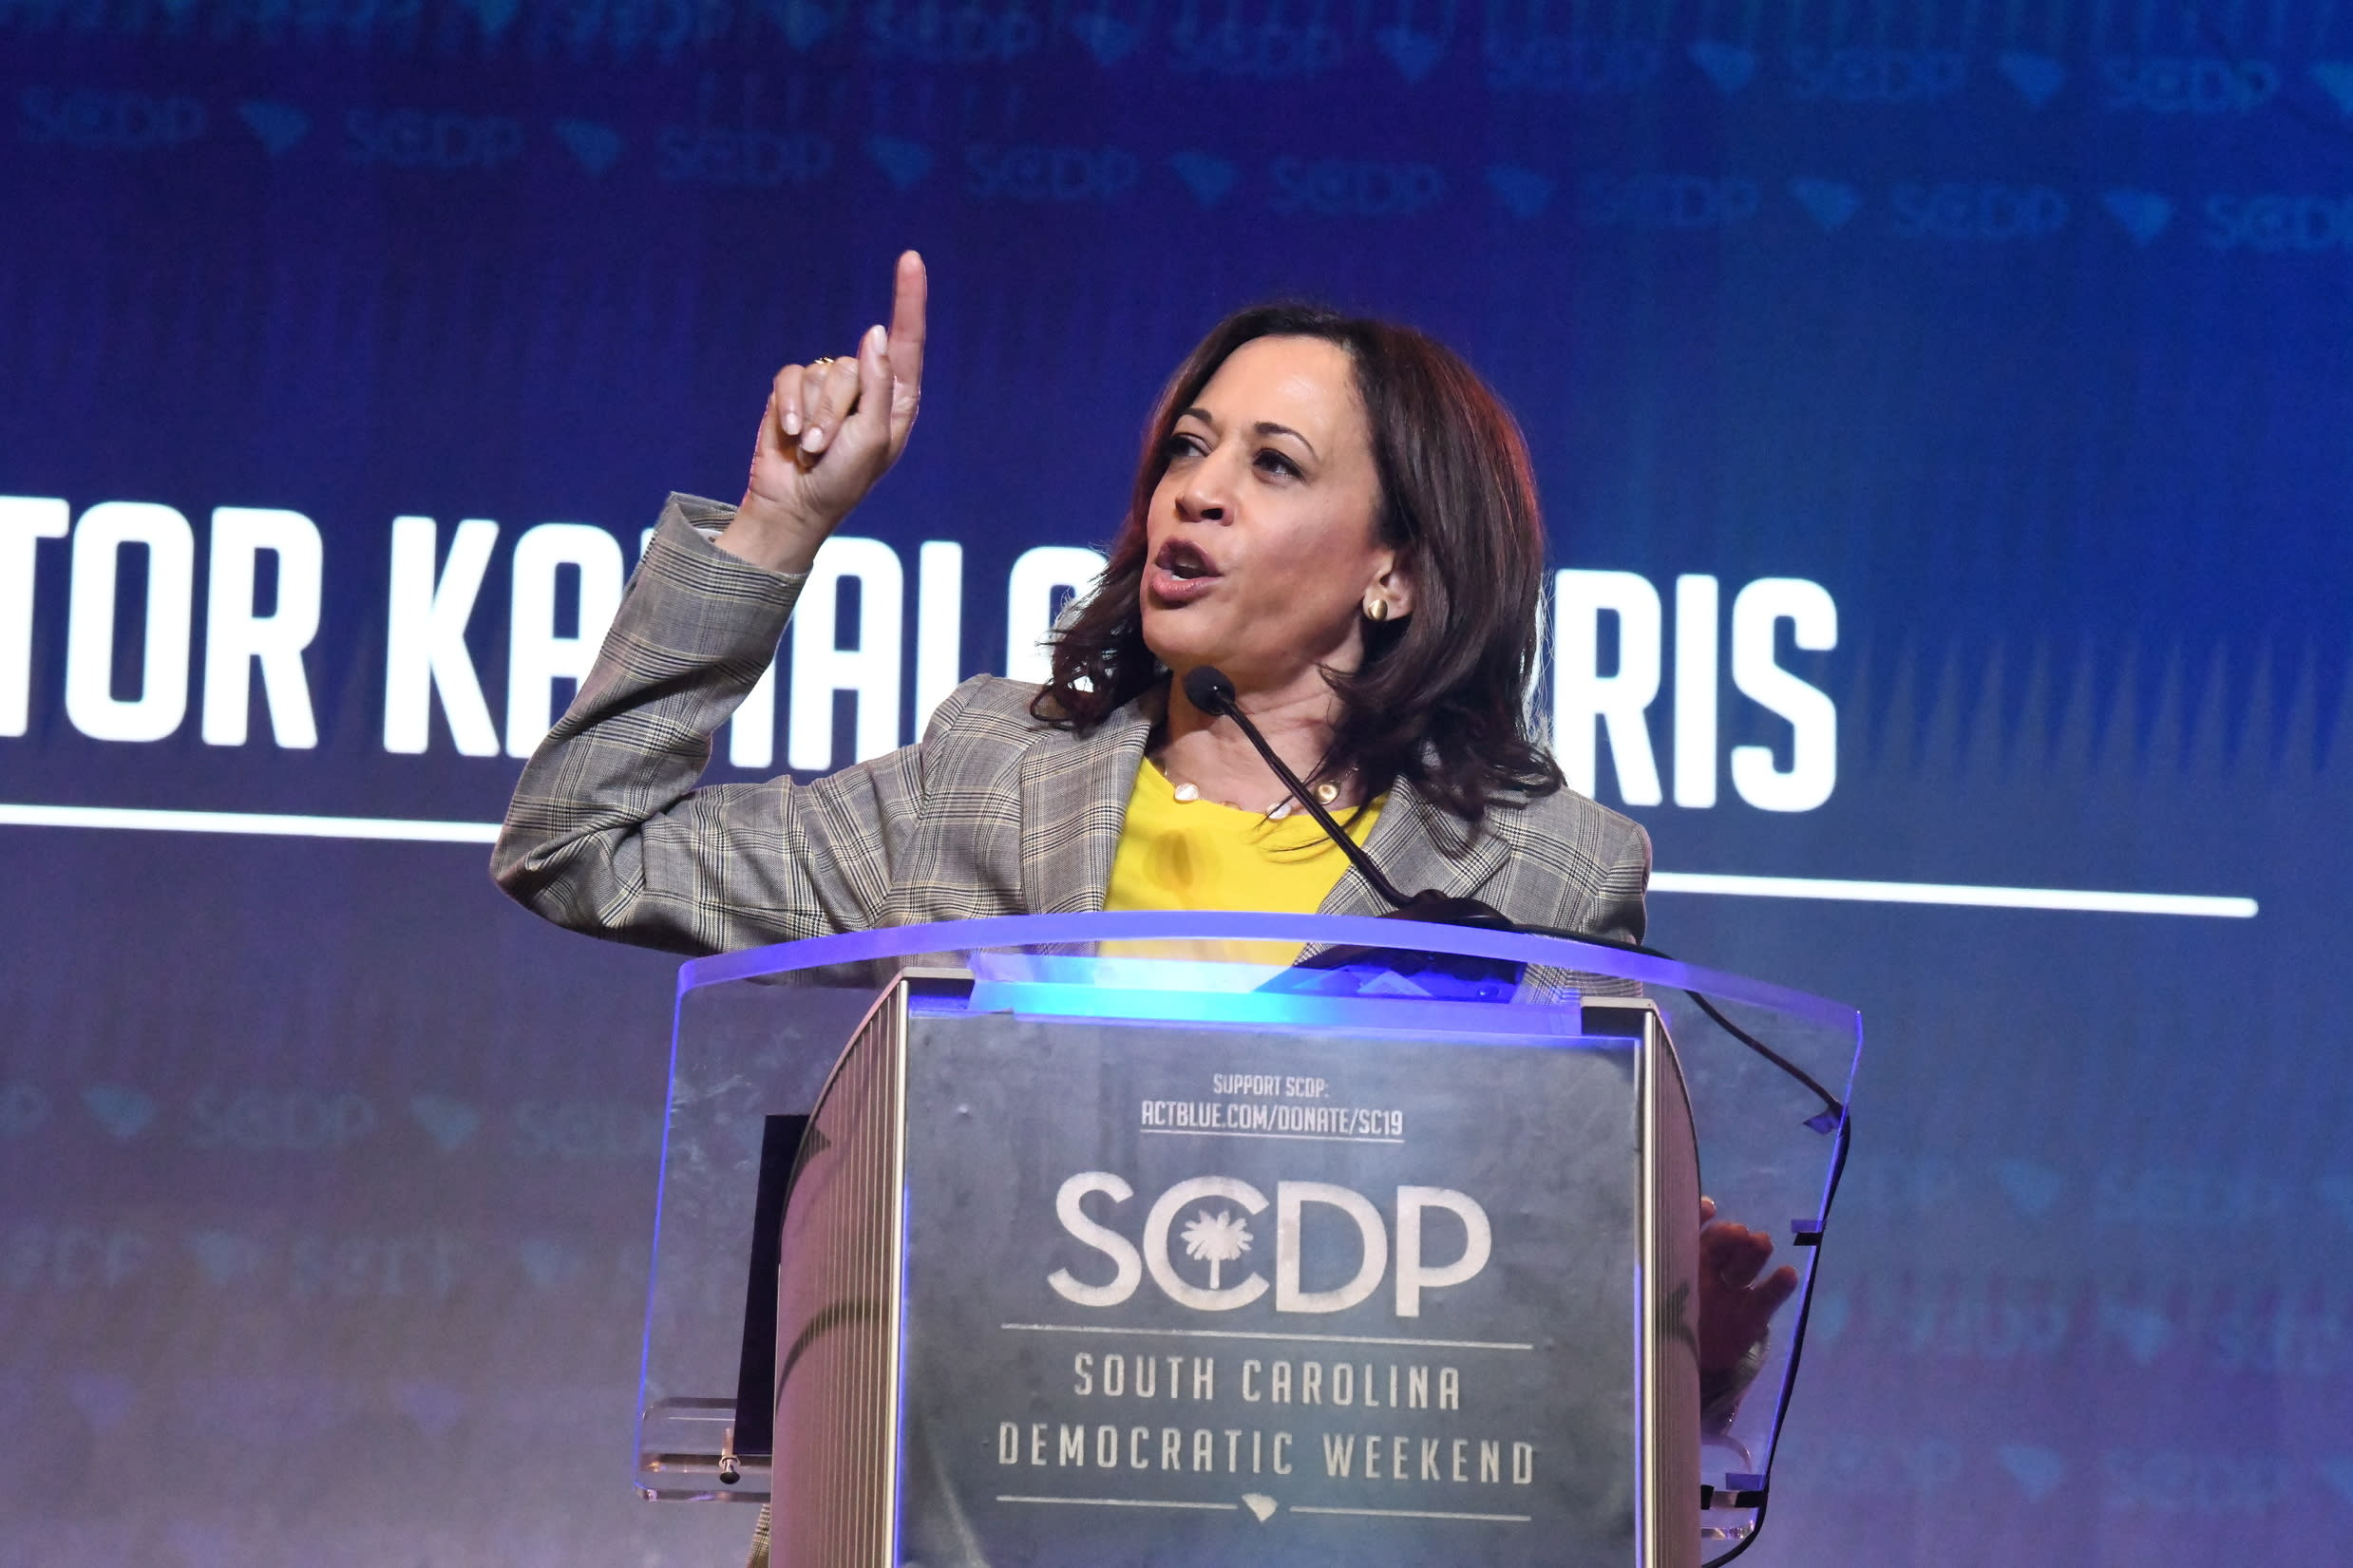 Best Food Dehydrator 2020 2020 Democrats strongly defend abortion rights at forum